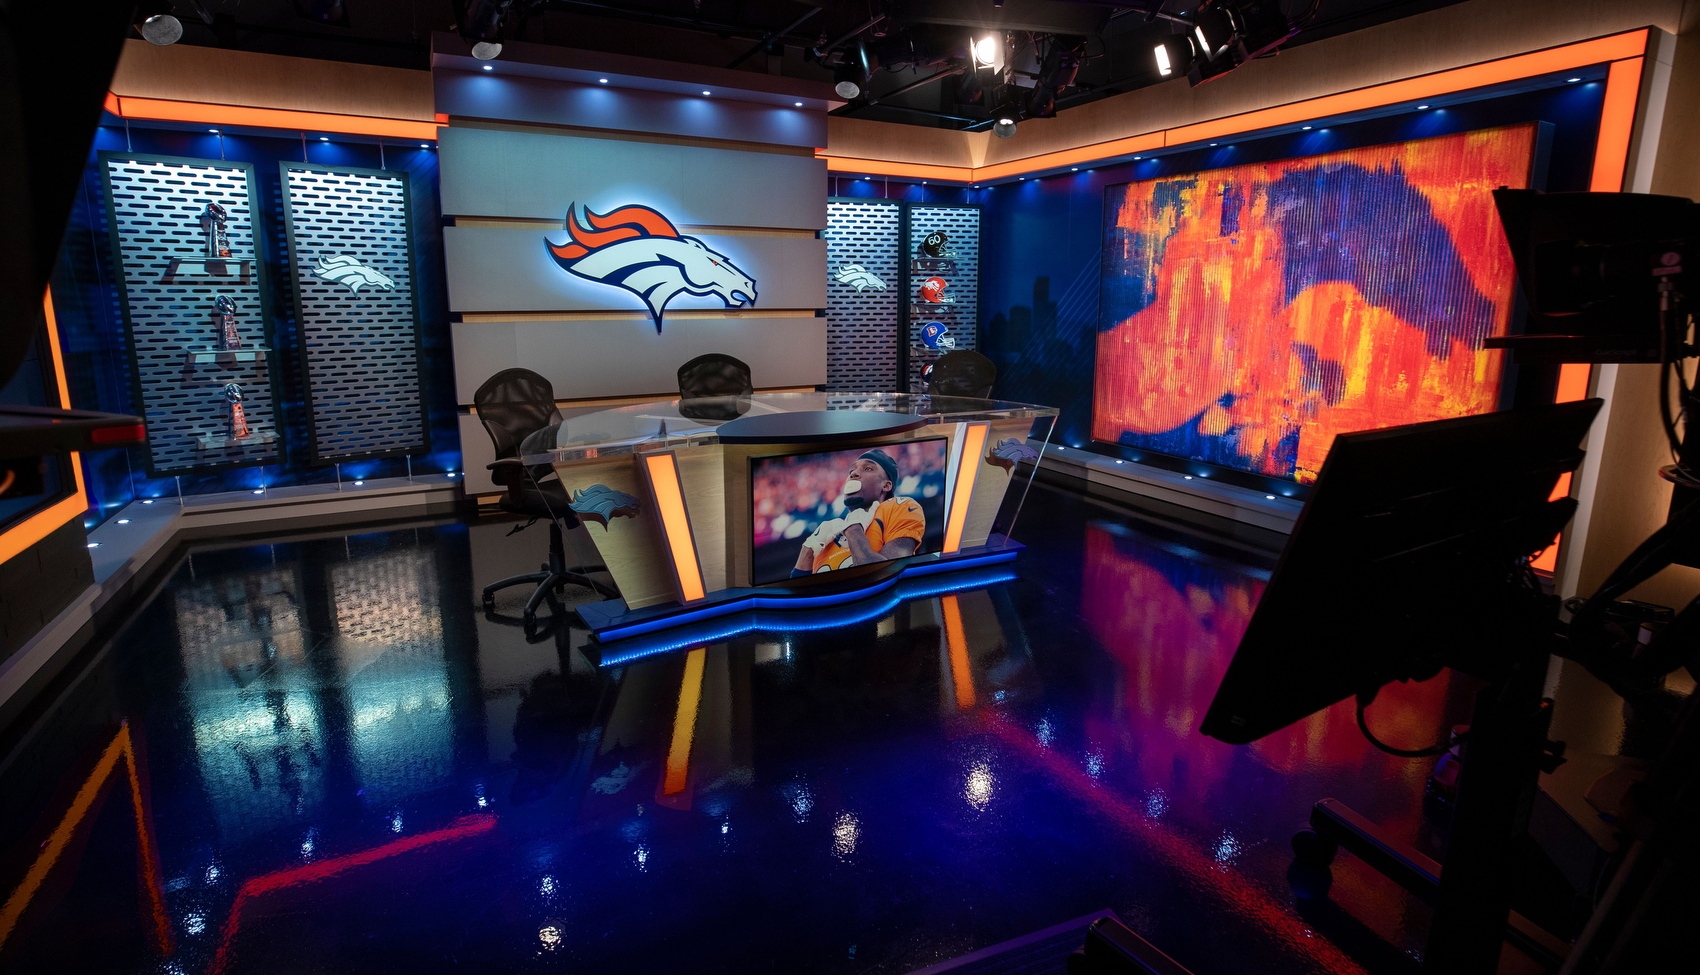 NCS_NFL-Denver-Broncos-TV-Studio_0001